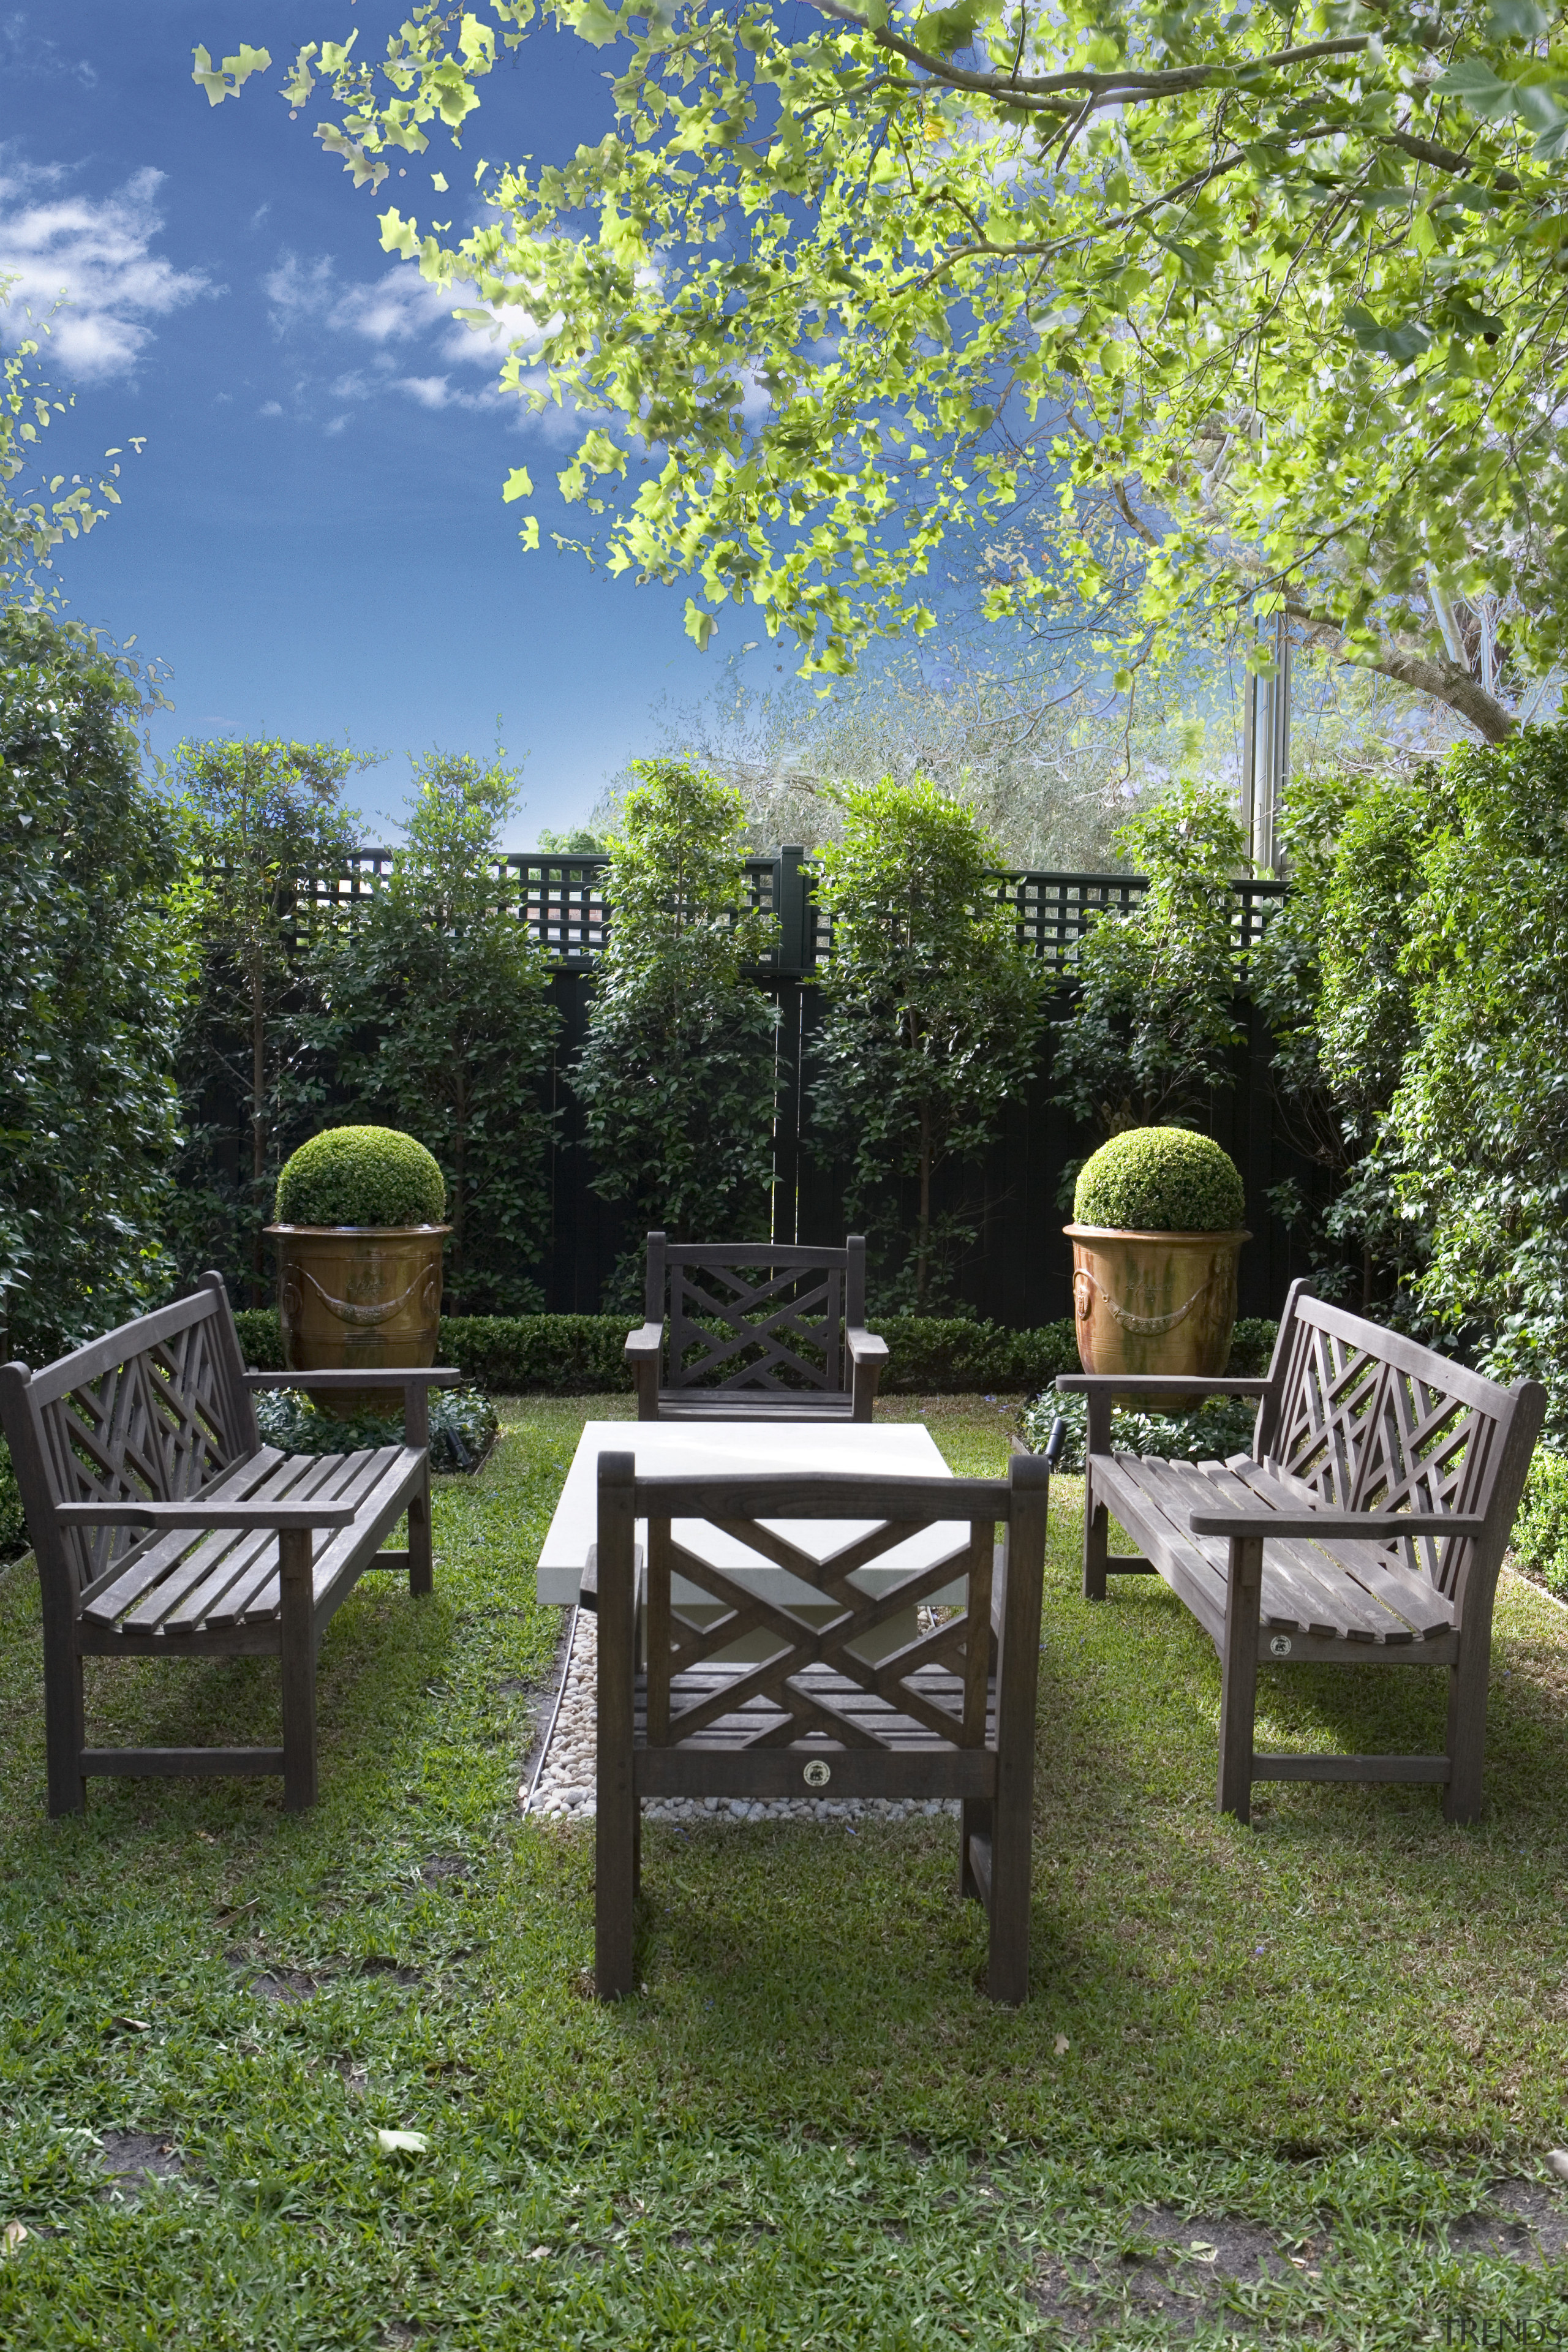 Large urns framed by low hedges and planted backyard, bench, chair, estate, furniture, garden, grass, green, home, house, landscape, landscaping, lawn, leaf, nature, outdoor structure, patio, plant, table, tree, yard, green